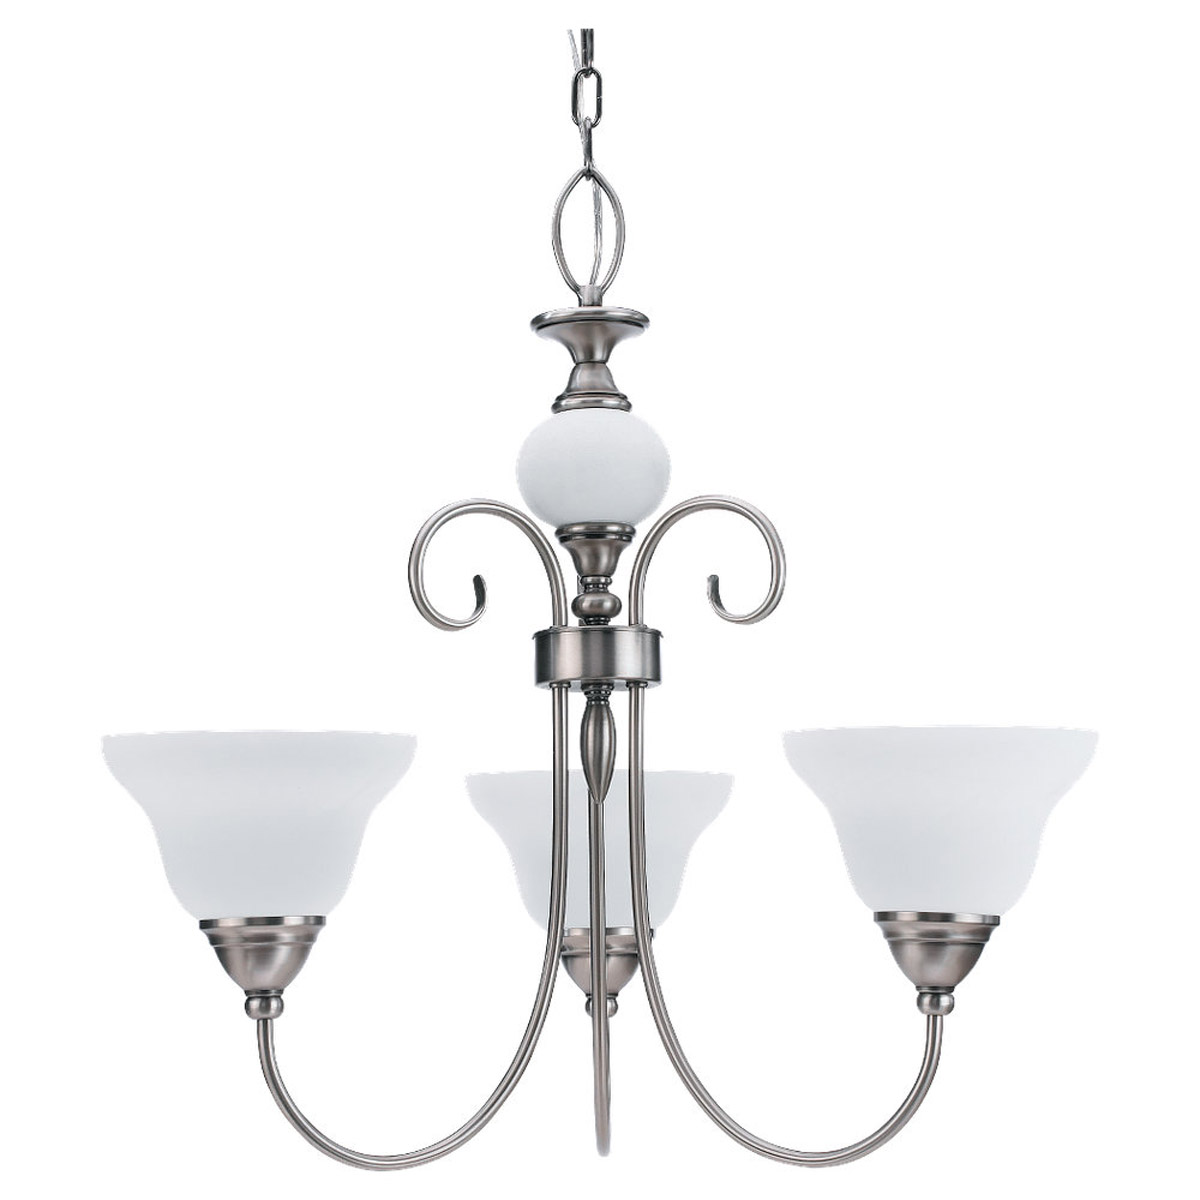 Sea Gull Lighting Montclaire 3 Light Chandelier in Antique Brushed Nickel 31105-965 photo